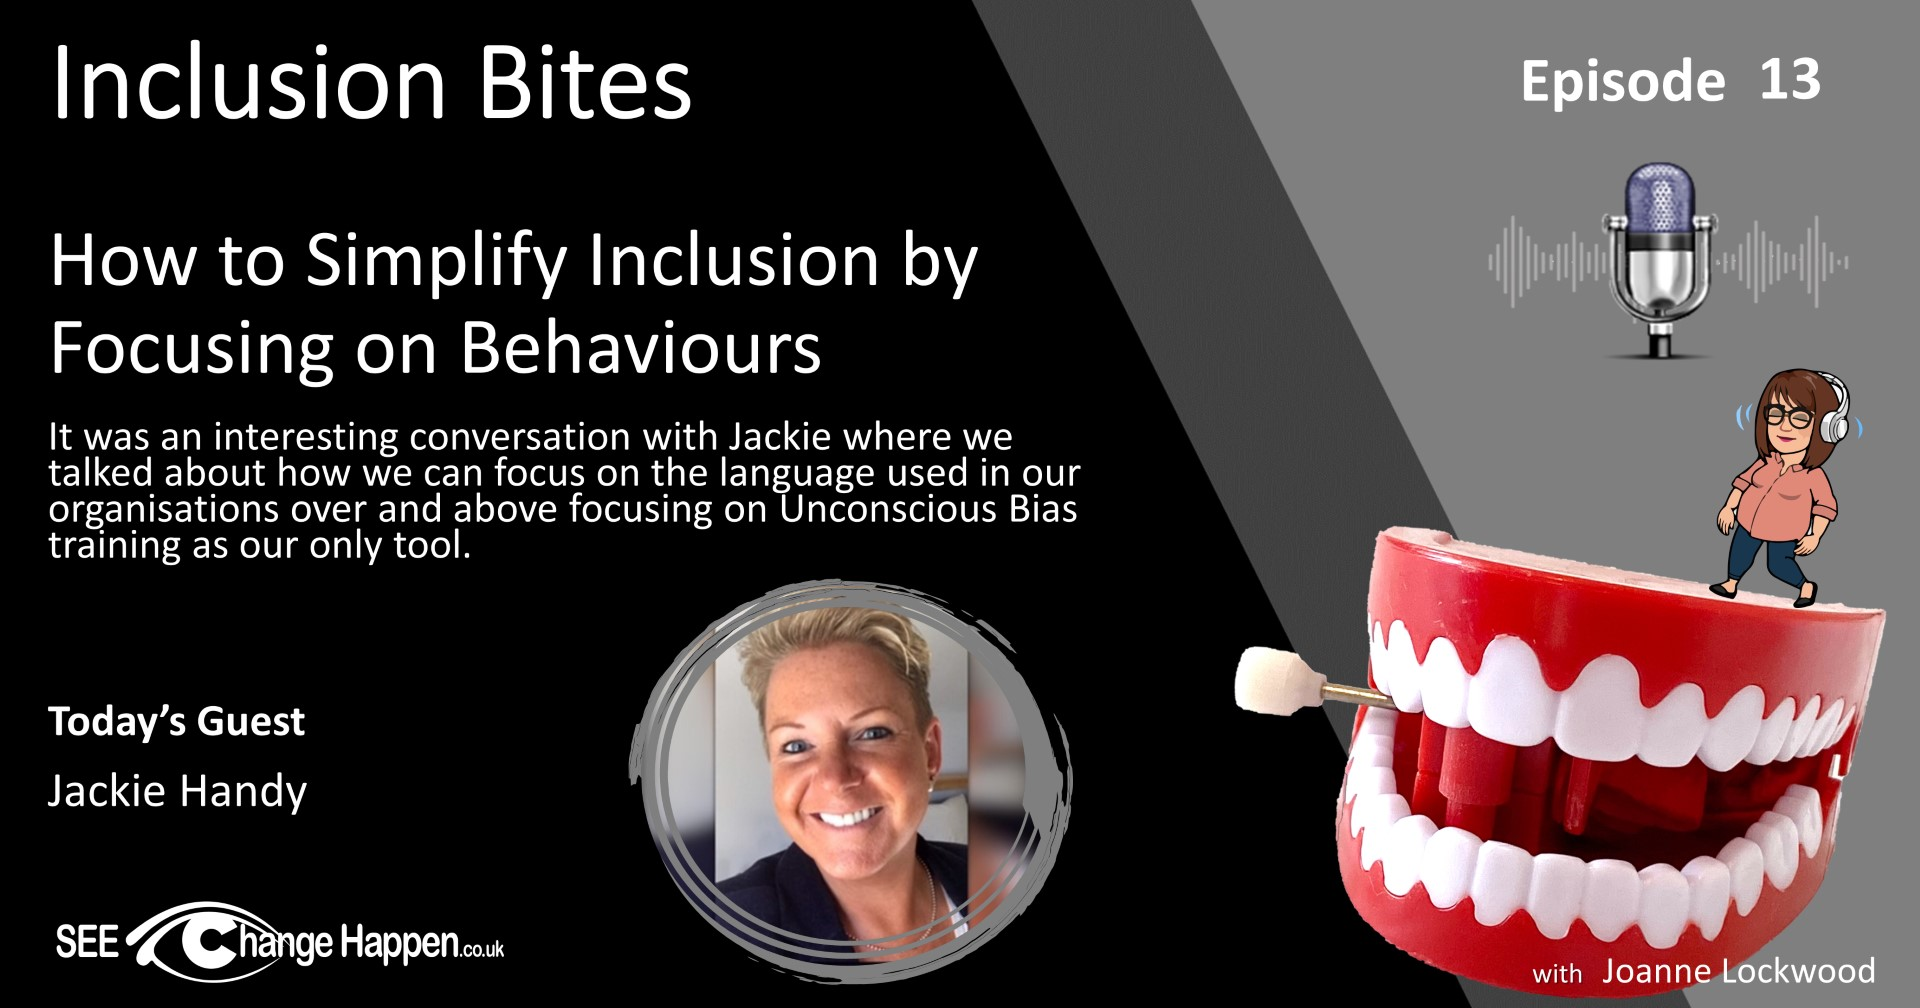 IBS013-how-to-simplify-inclusion-by-focusing-on-behaviours-wide